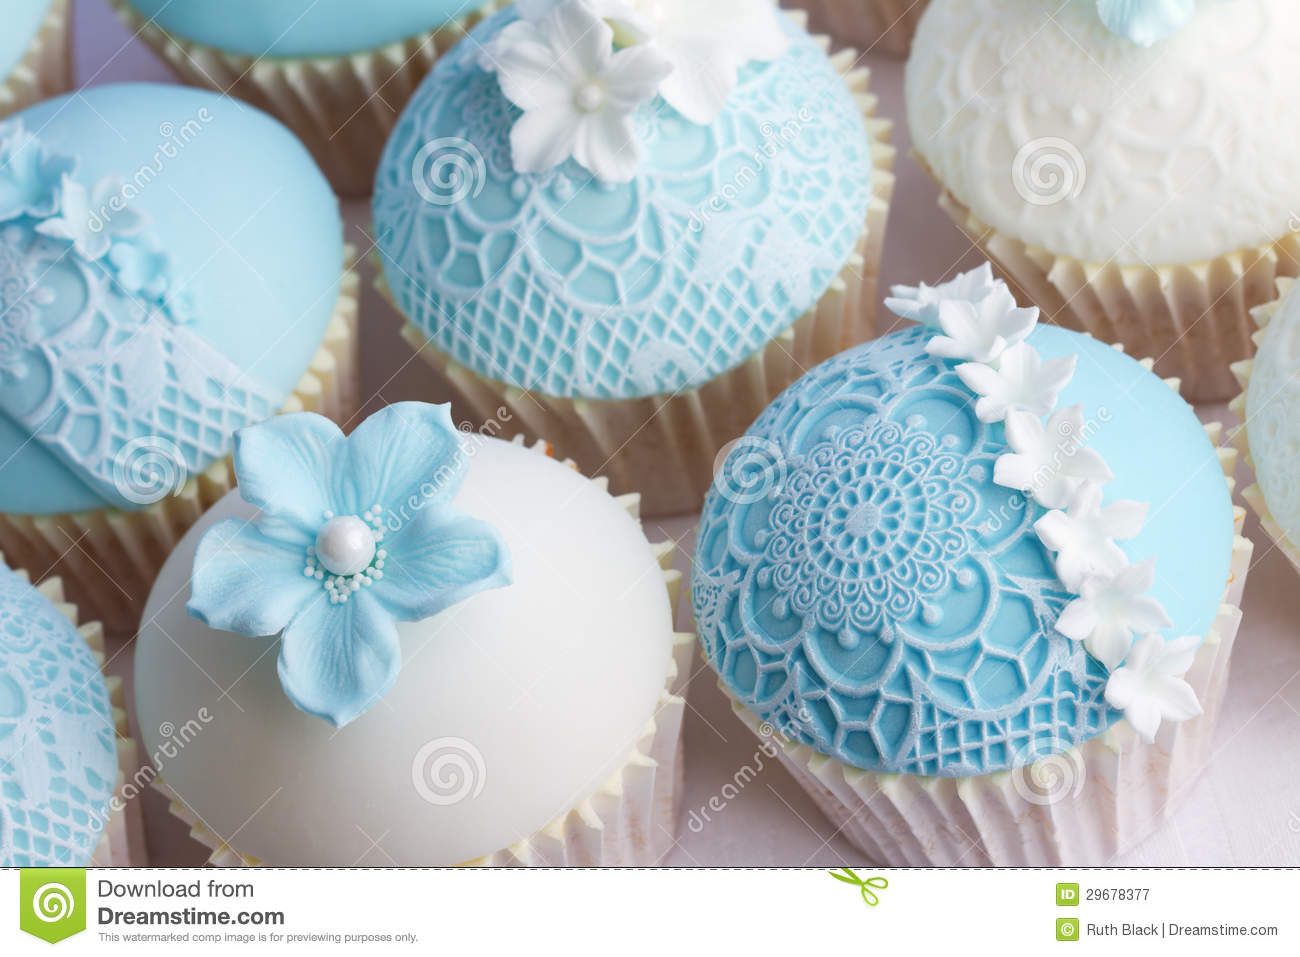 Wedding cupcakes stock image. Image of decorated, overhead - 25348947